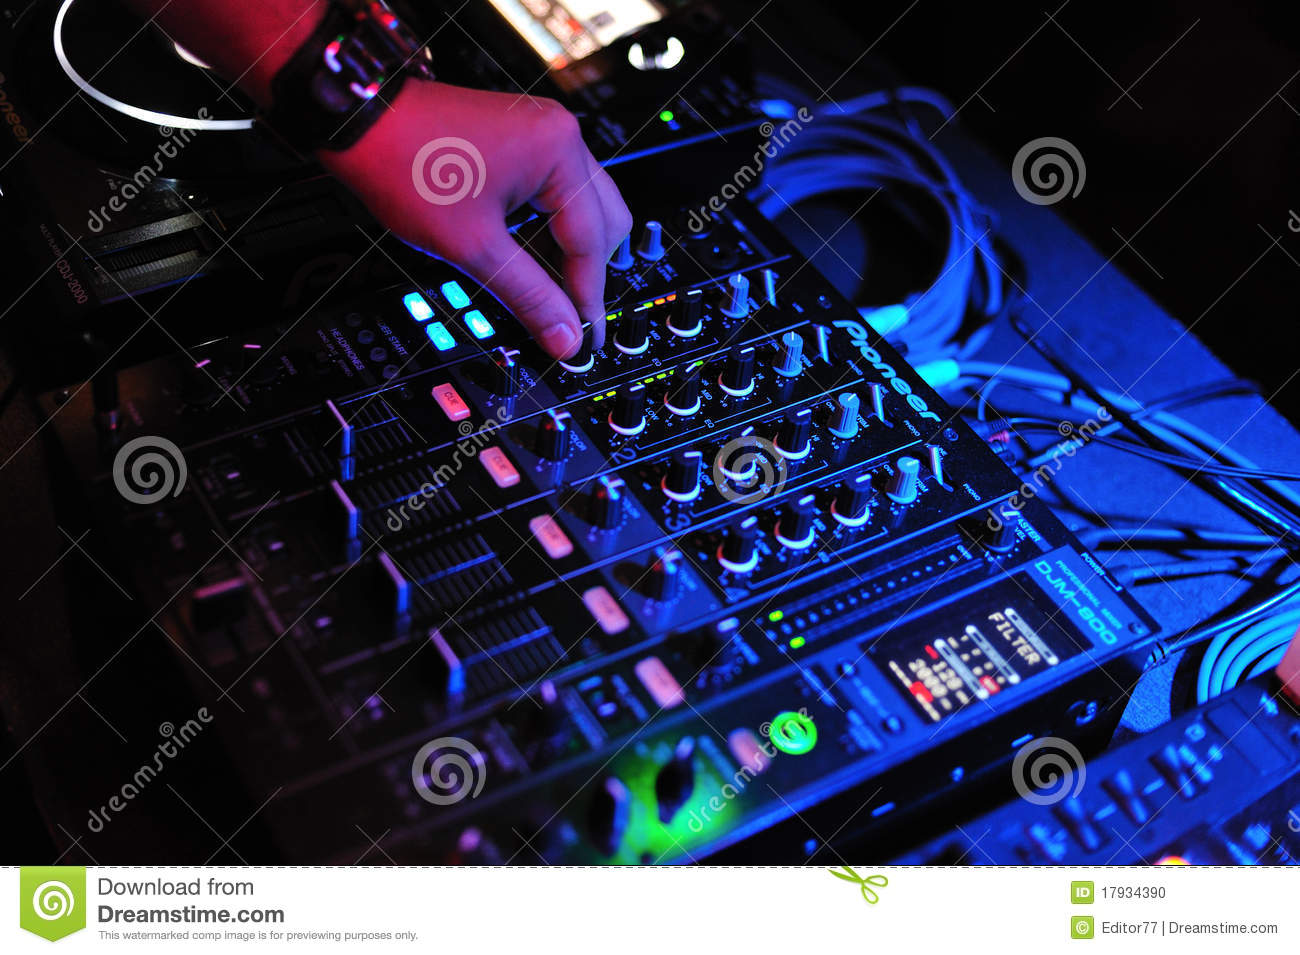 Dj Mix And Playing With Pioneer Mixer And Console